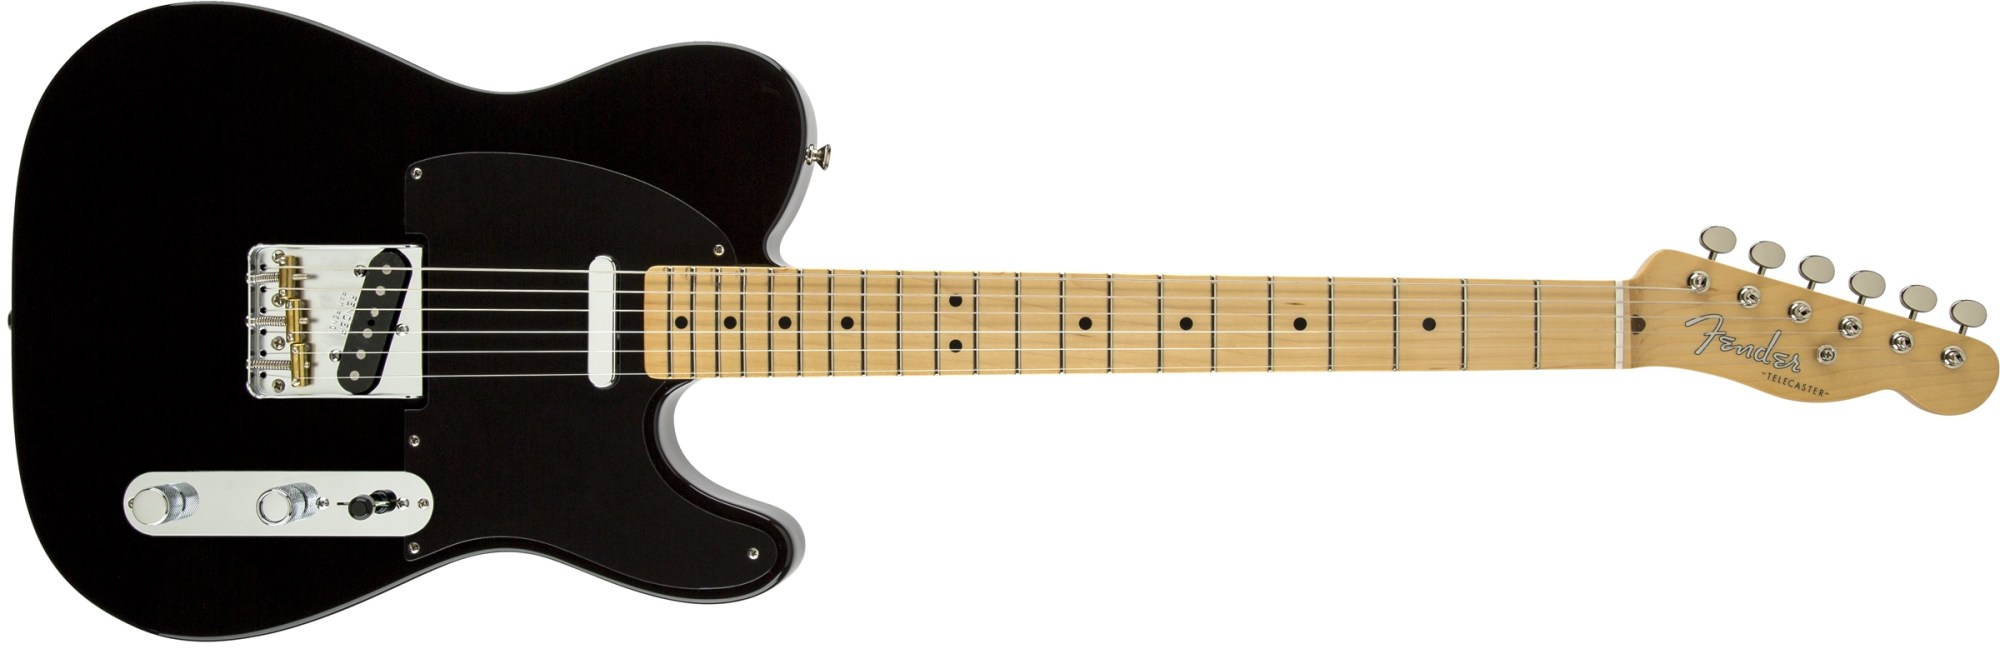 hight resolution of classic player baja telecaster electric guitars tap to expand